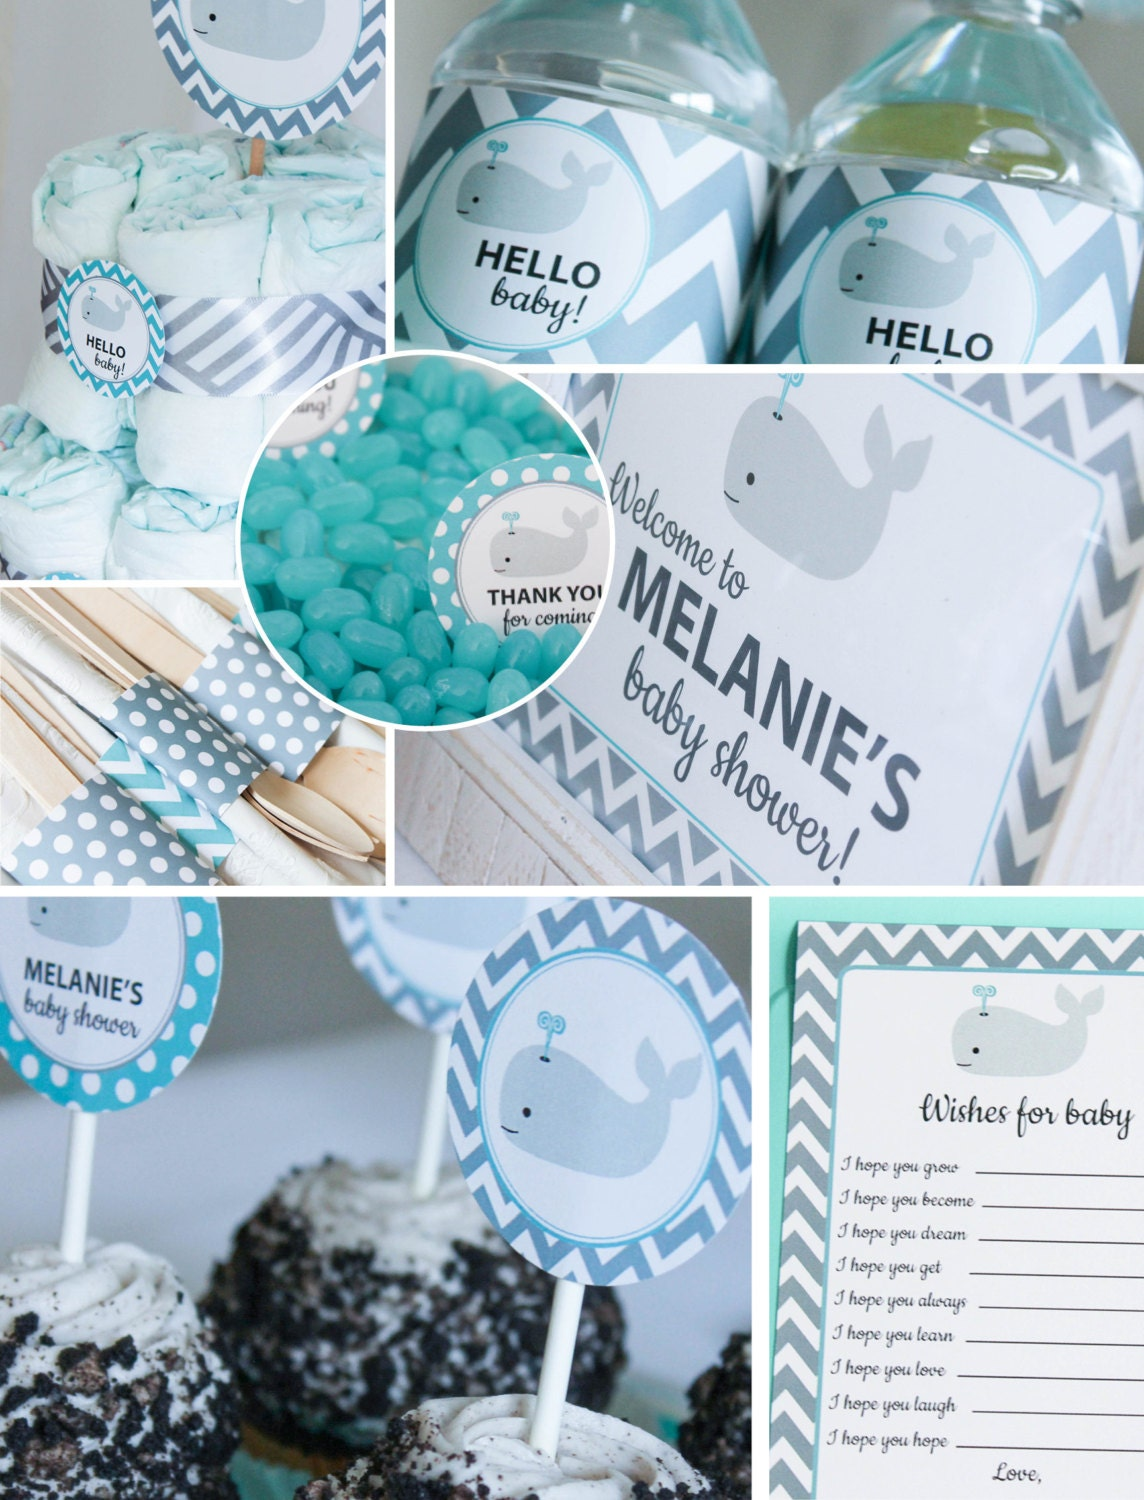 Whale baby shower decorations teal gray chevron printable diy - Baby shower chevron decorations ...